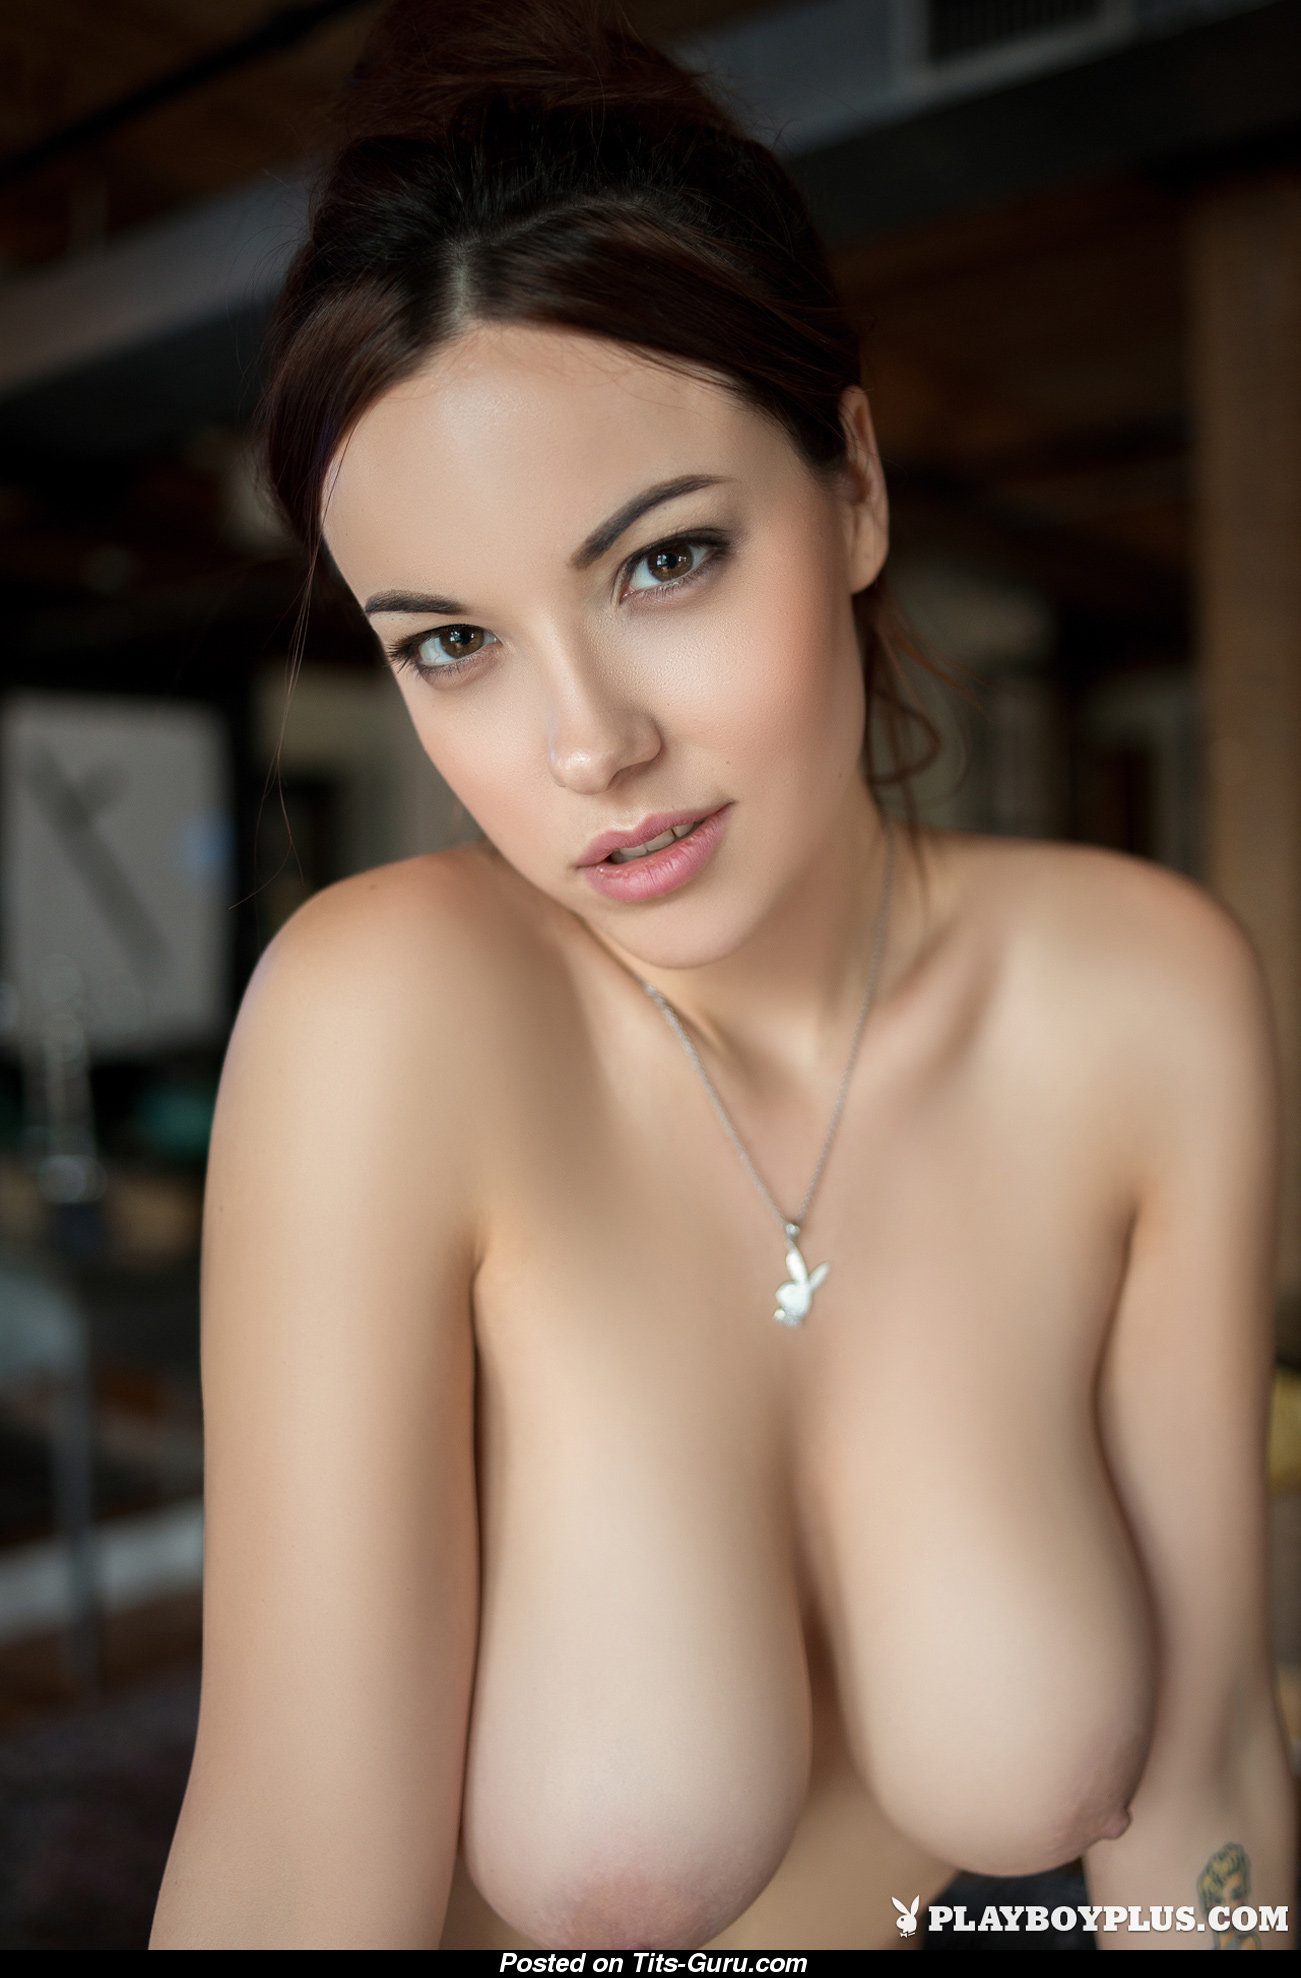 Elizabeth marxs boobs